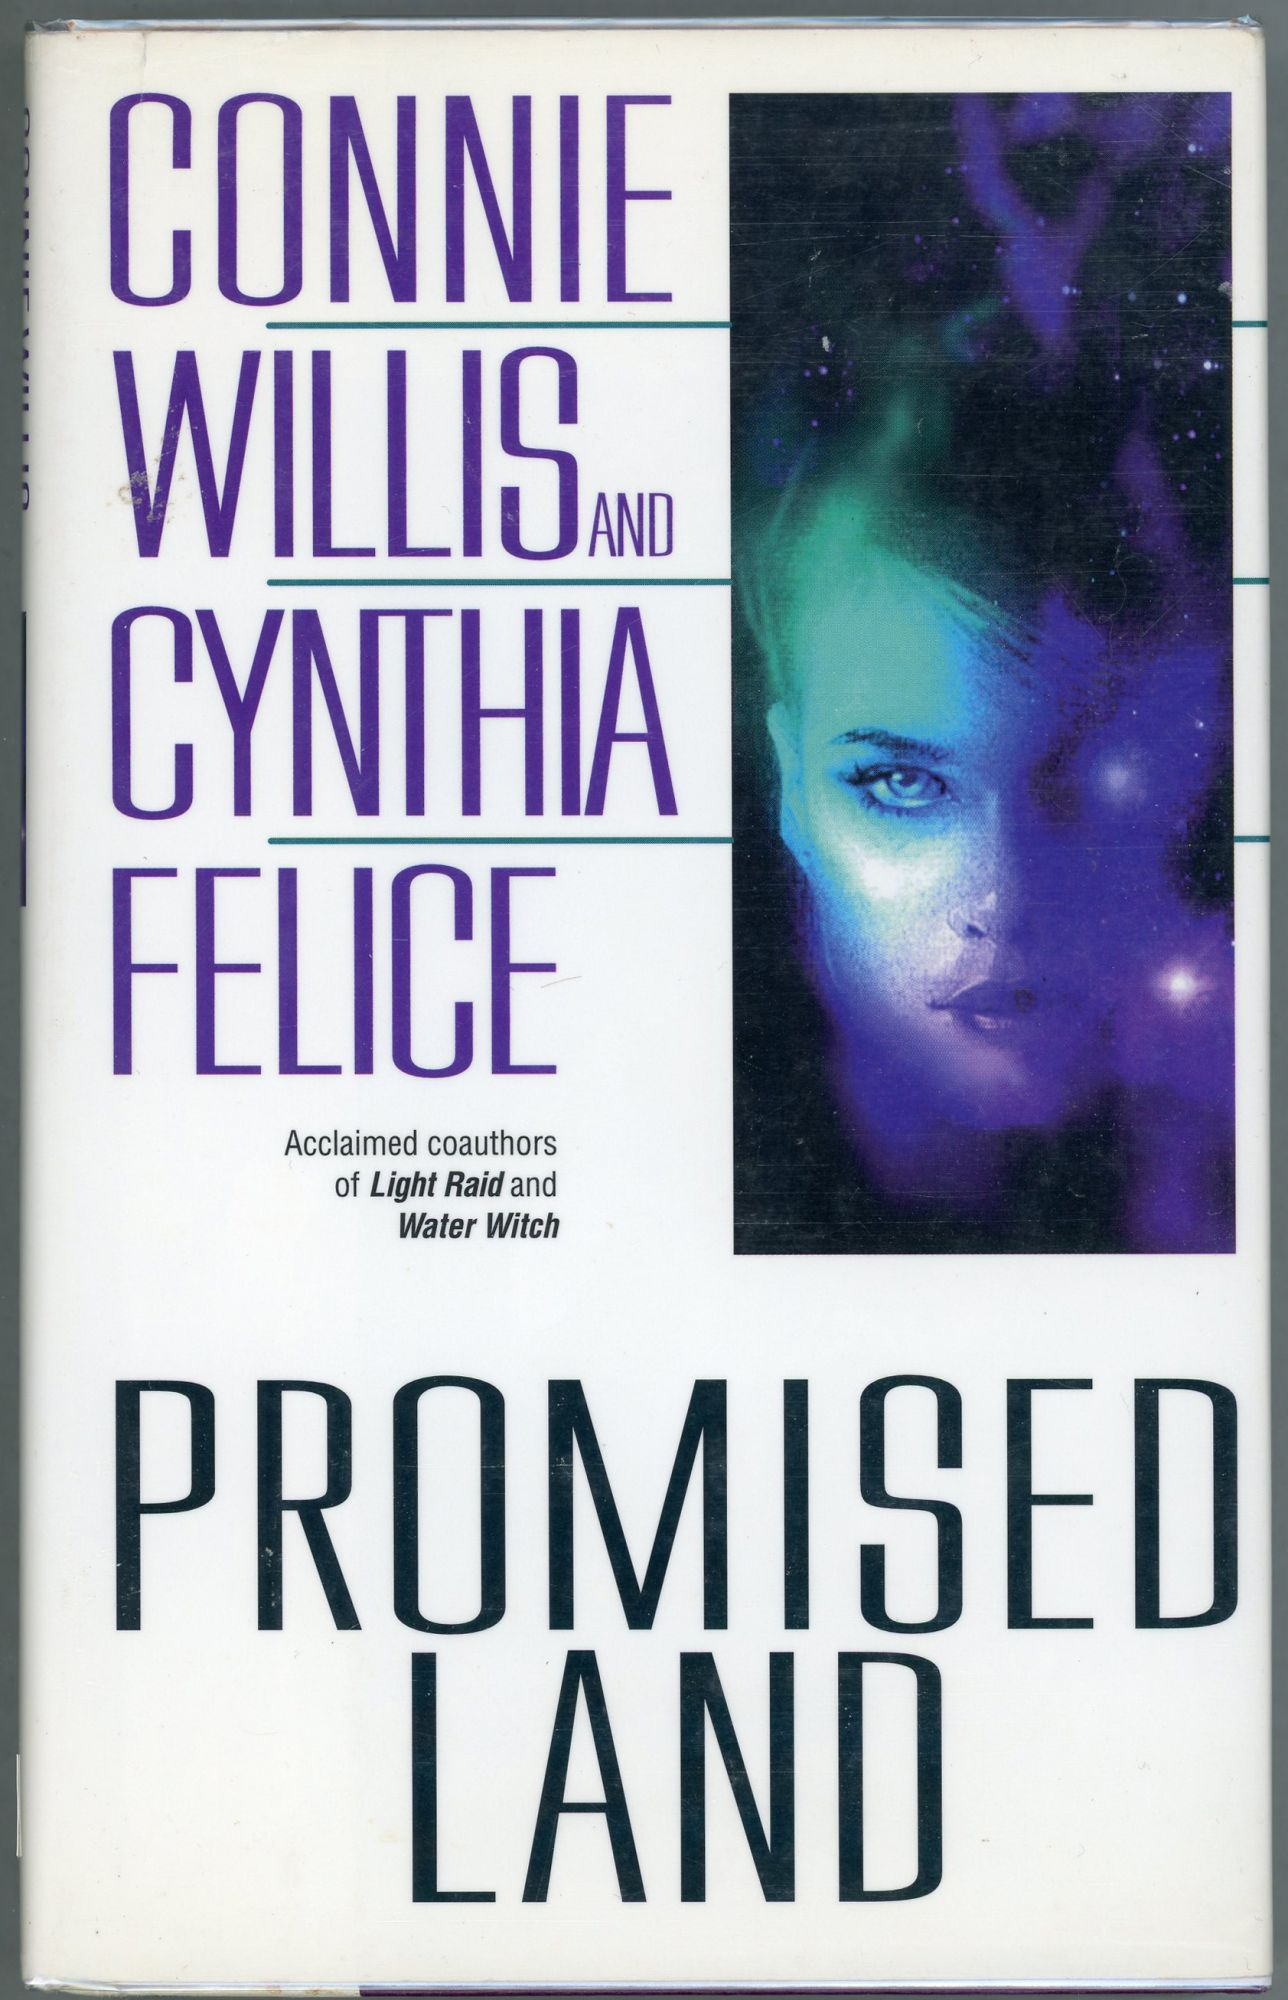 Promised Land Connie Willis Cynthia Felice First Printing